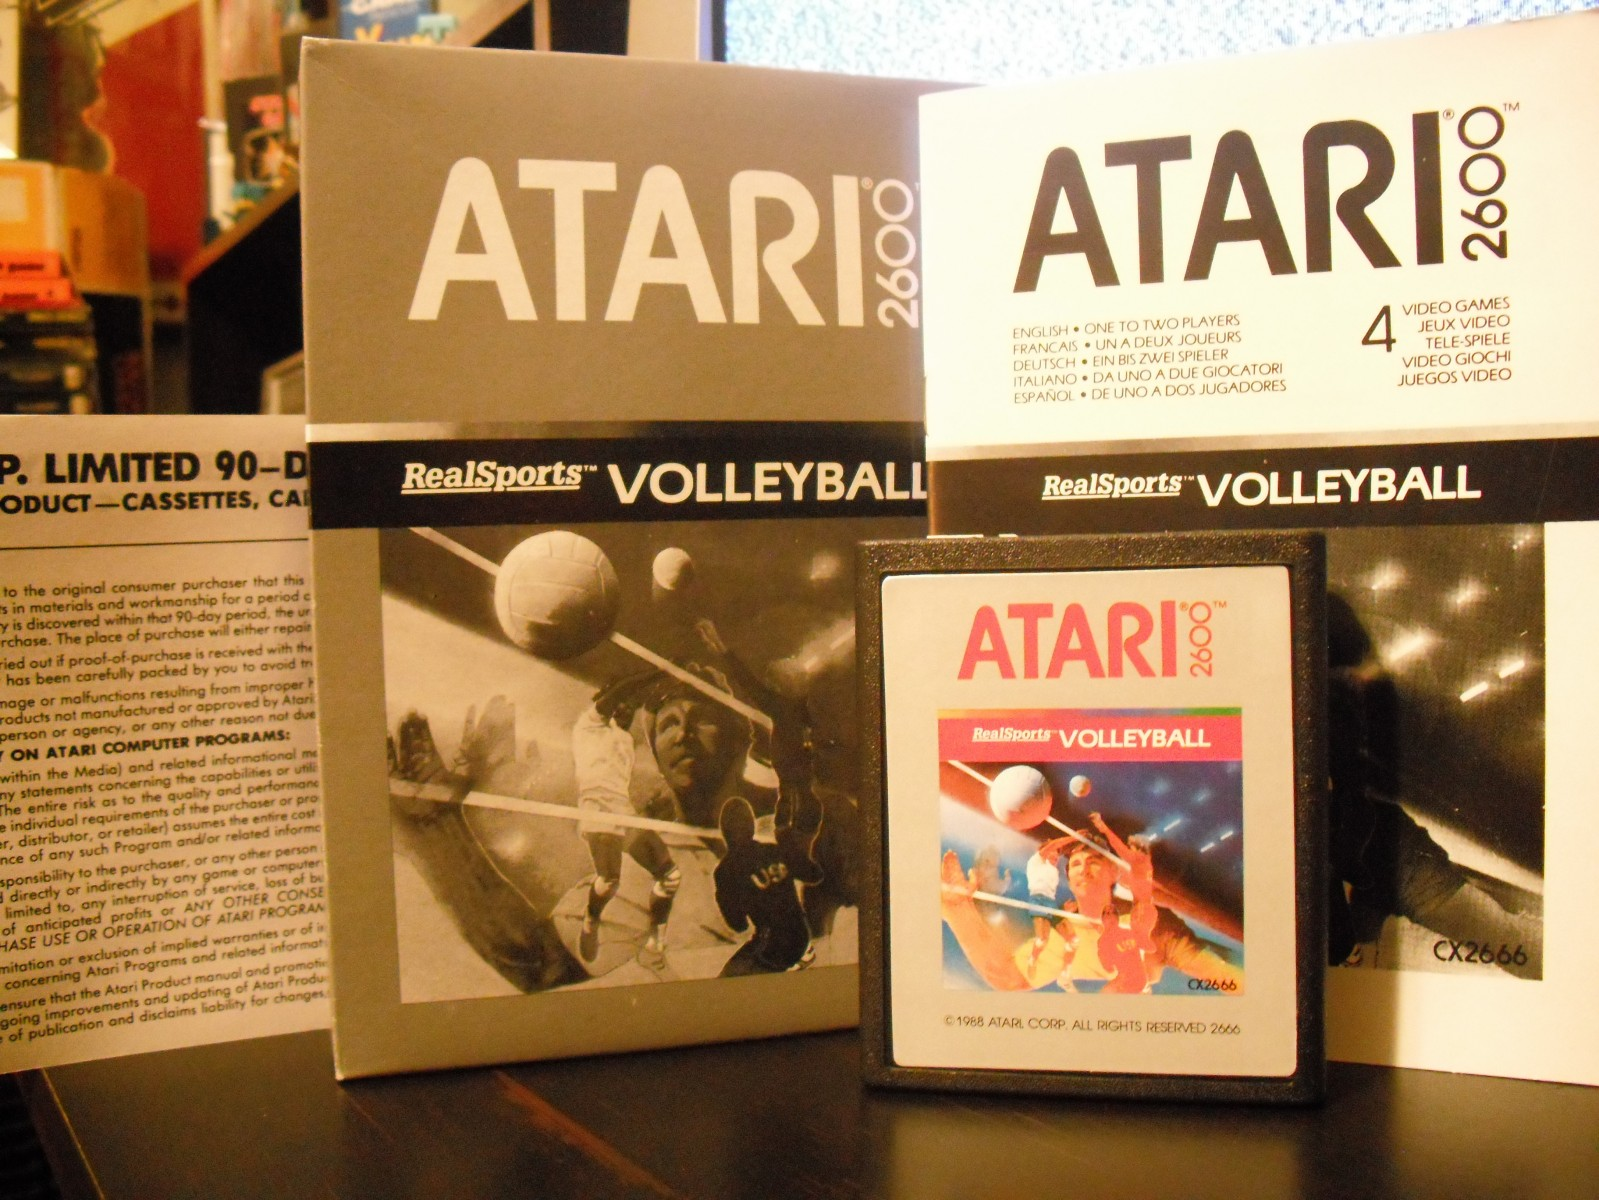 Volleyball (Atari Corp.)